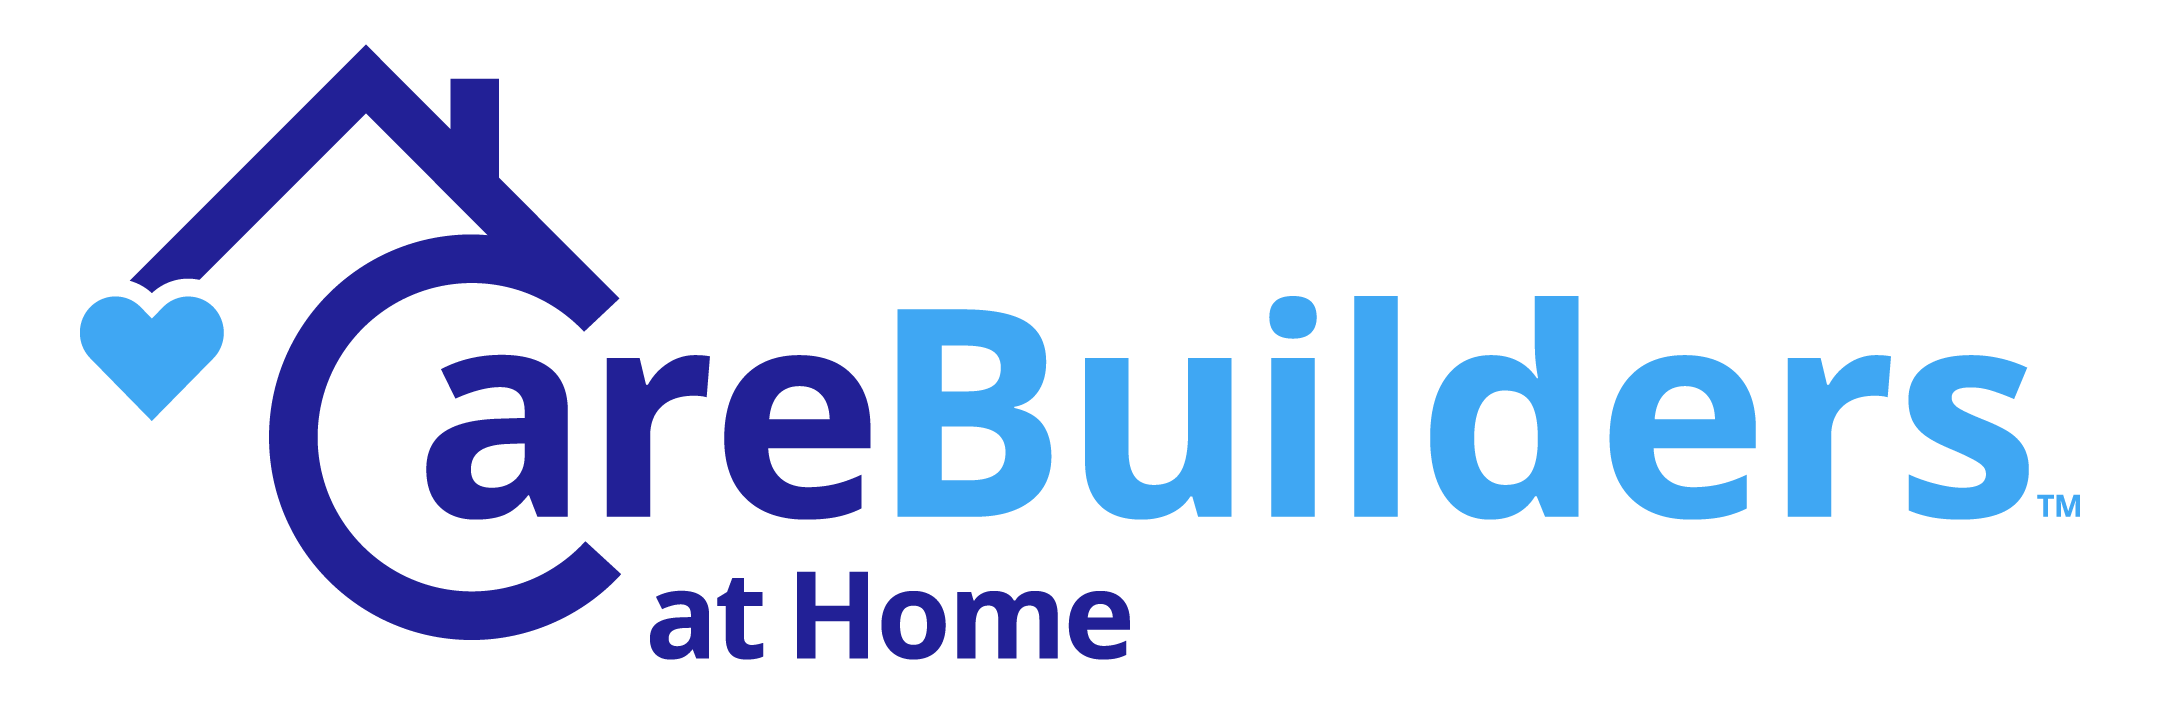 CareBuilders-PrimaryLogo (1).png